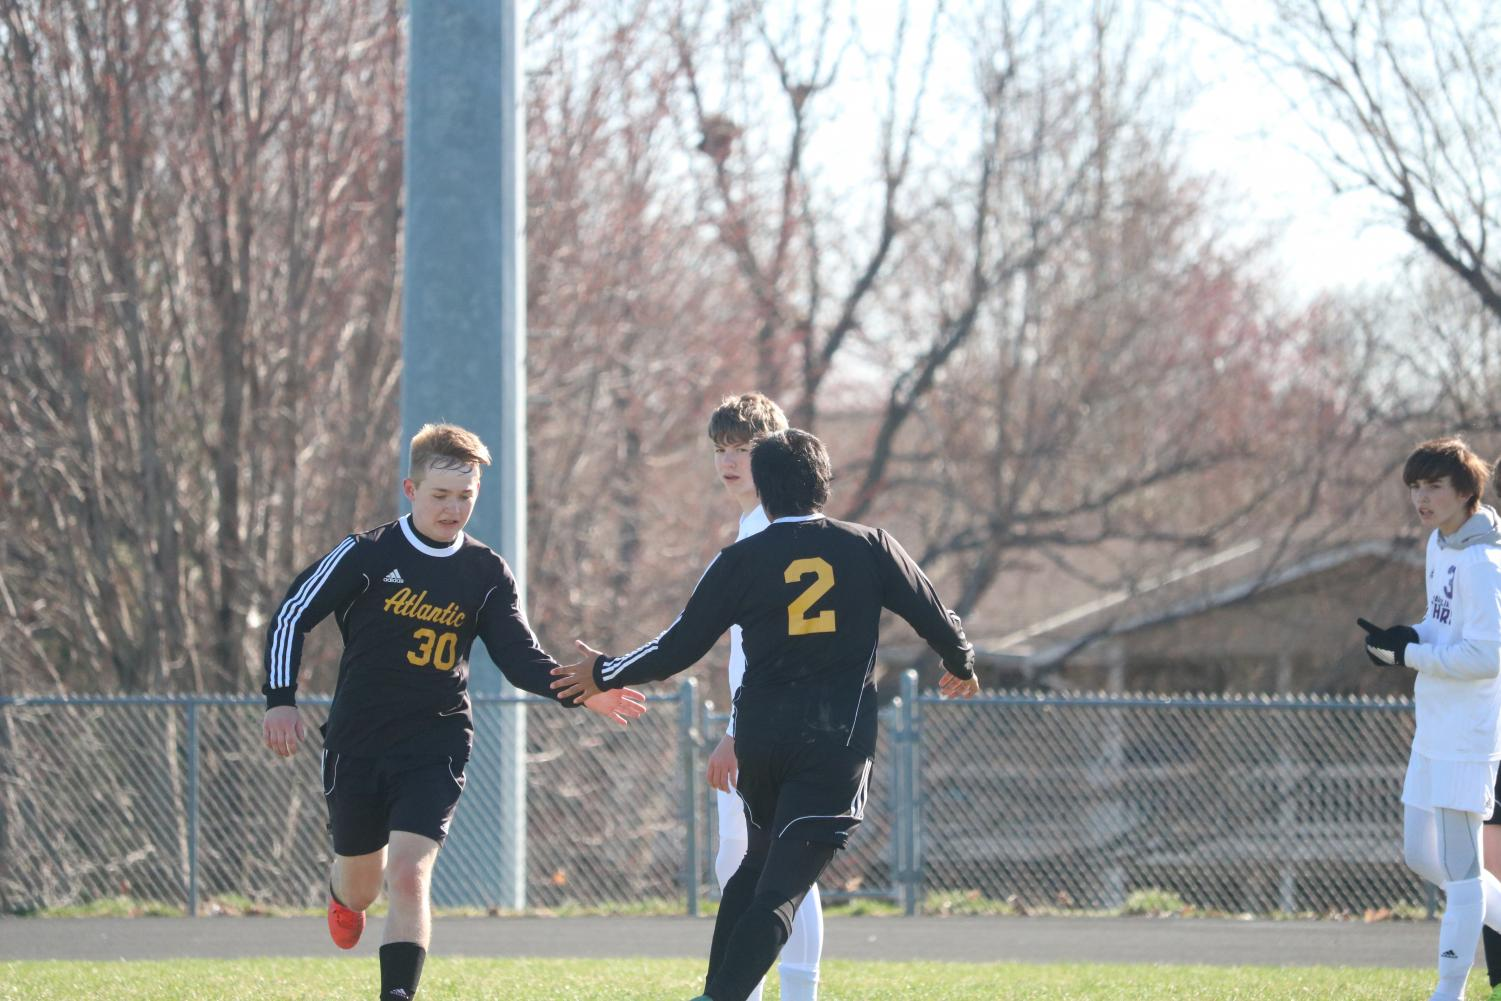 TAKING A BREAK - Senior Brainhart Buliche subs in for junior Zach Mathisen and gives him the typical high-five seen during this process. This is Mathisen's first year of playing soccer in high school.